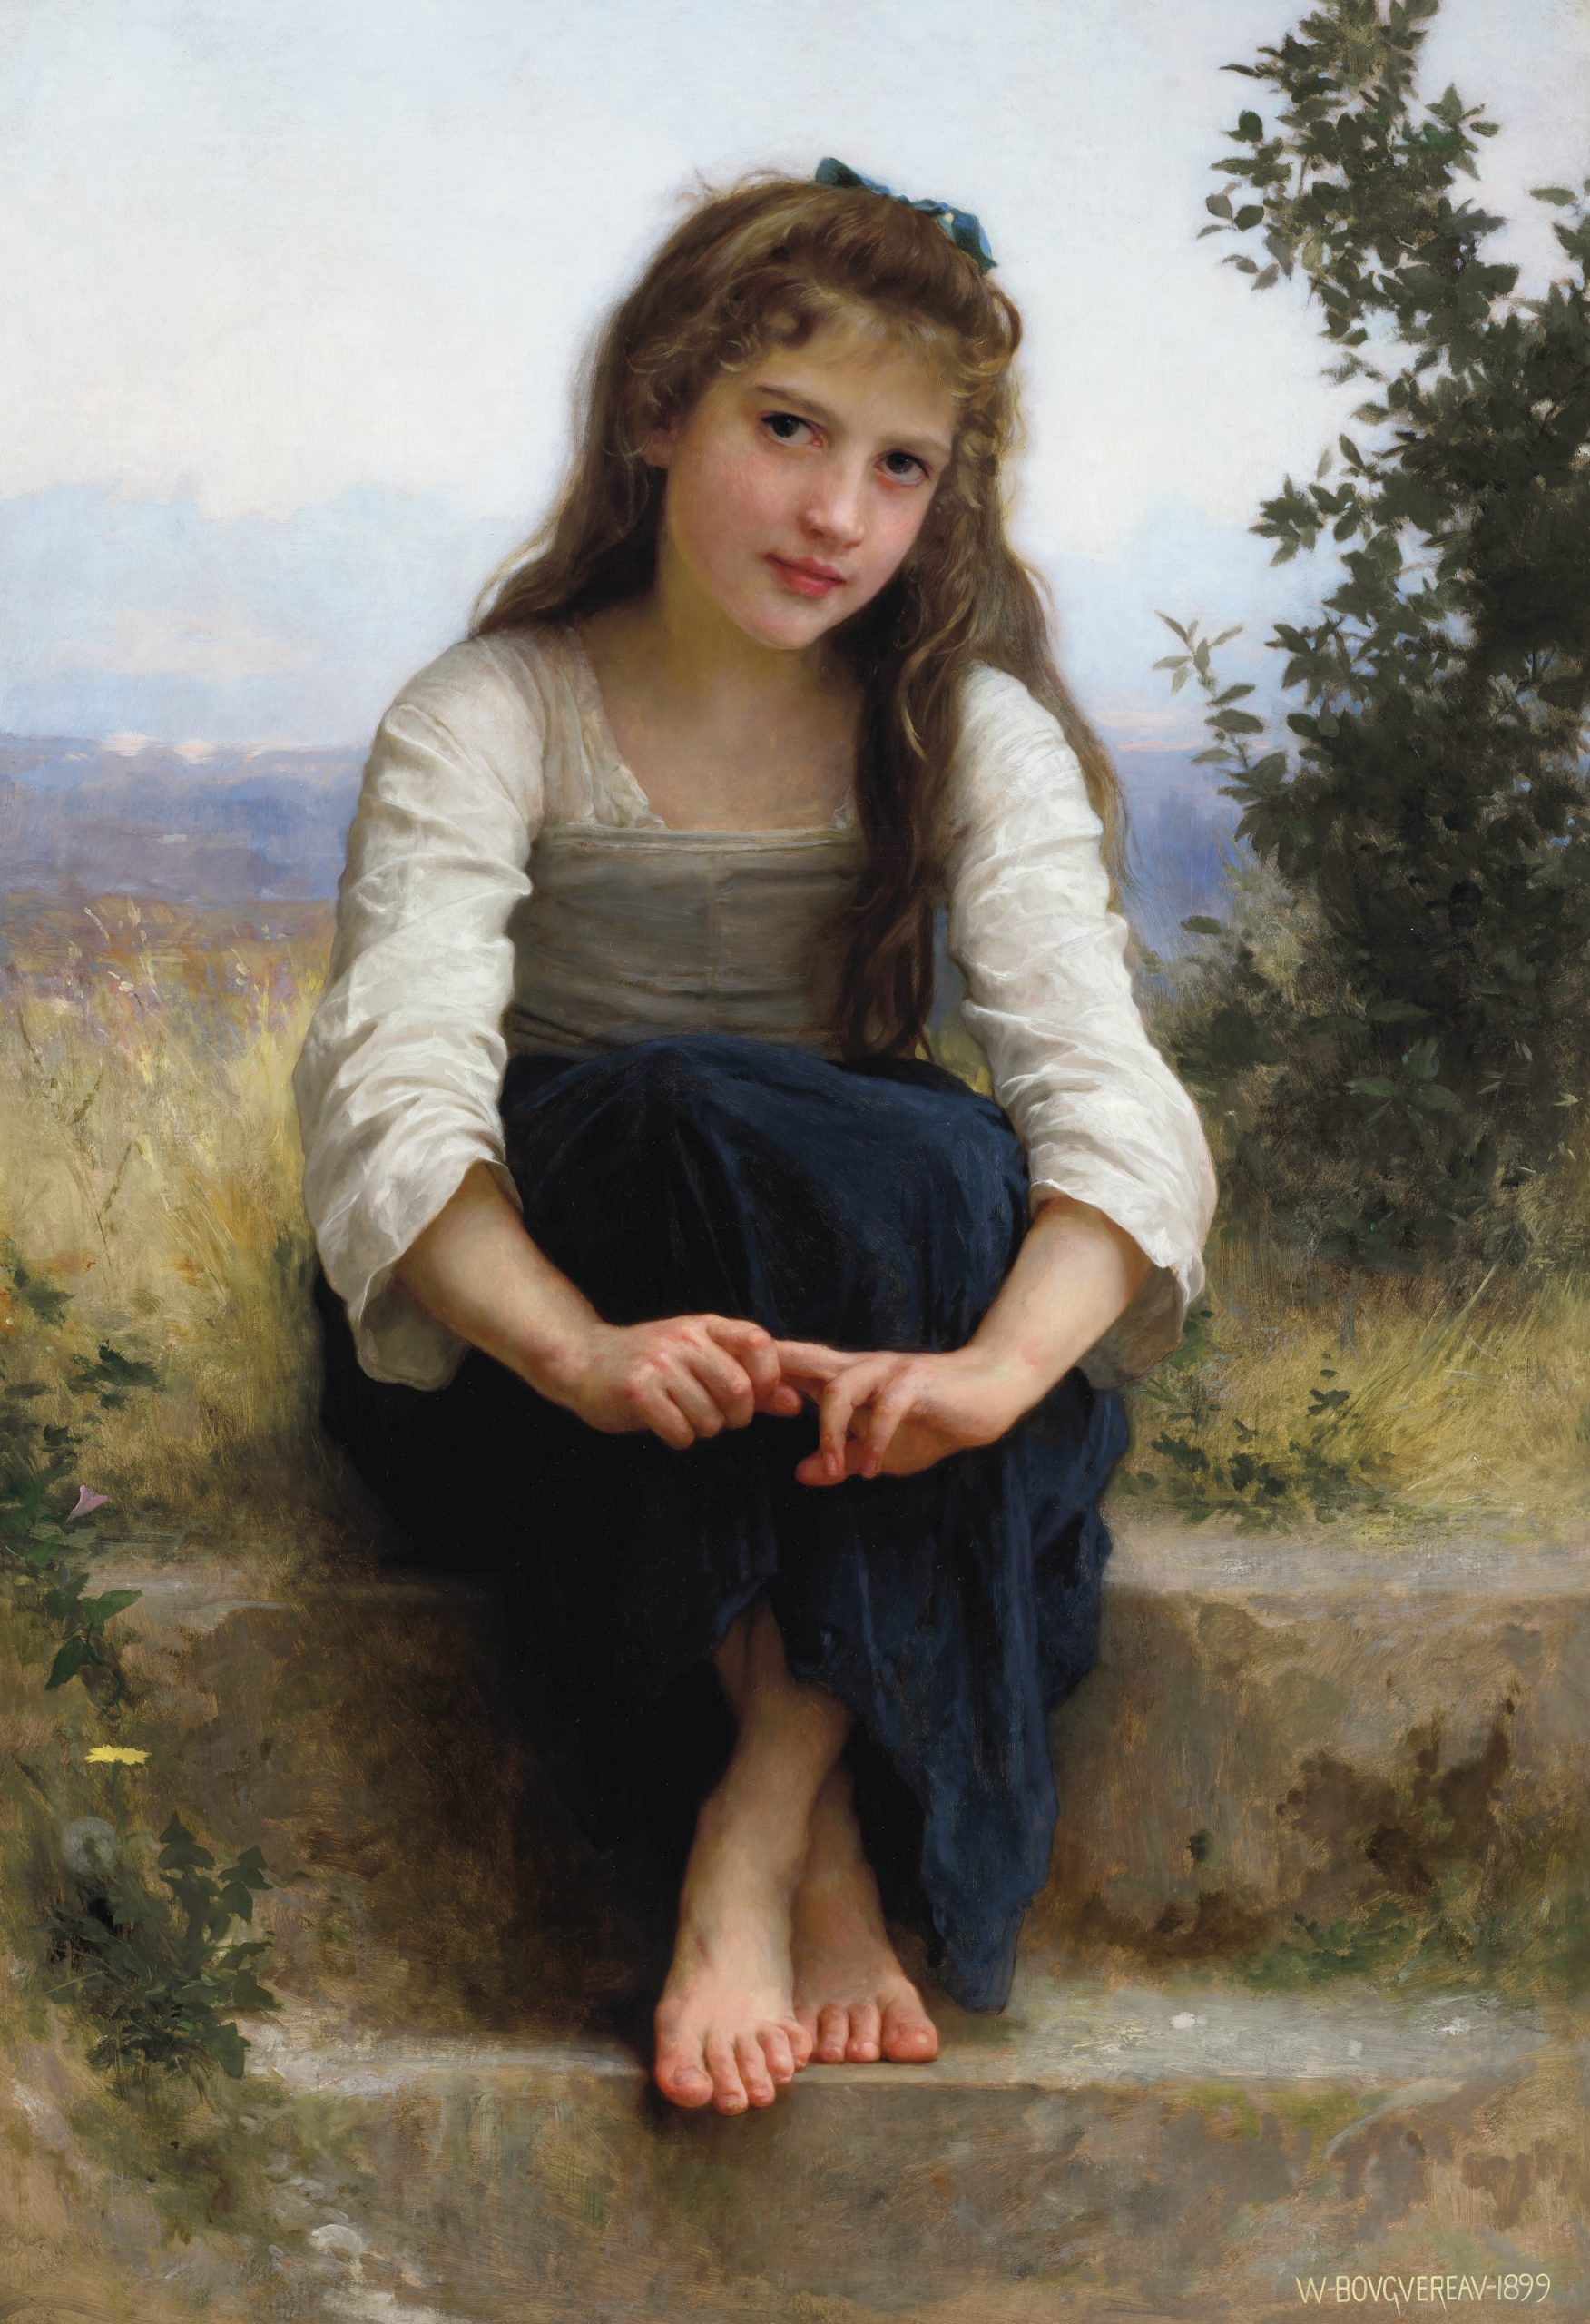 William Adolphe Bouguereau (French, 1825-1905) Rêverie signed and dated 'W-BOVGVEREAV-1899' (lower right) oil on canvas 43 ¾ x 30 1:8 in. (111.1 x 76.5 cm.) - © CHRISTIE'S 2020